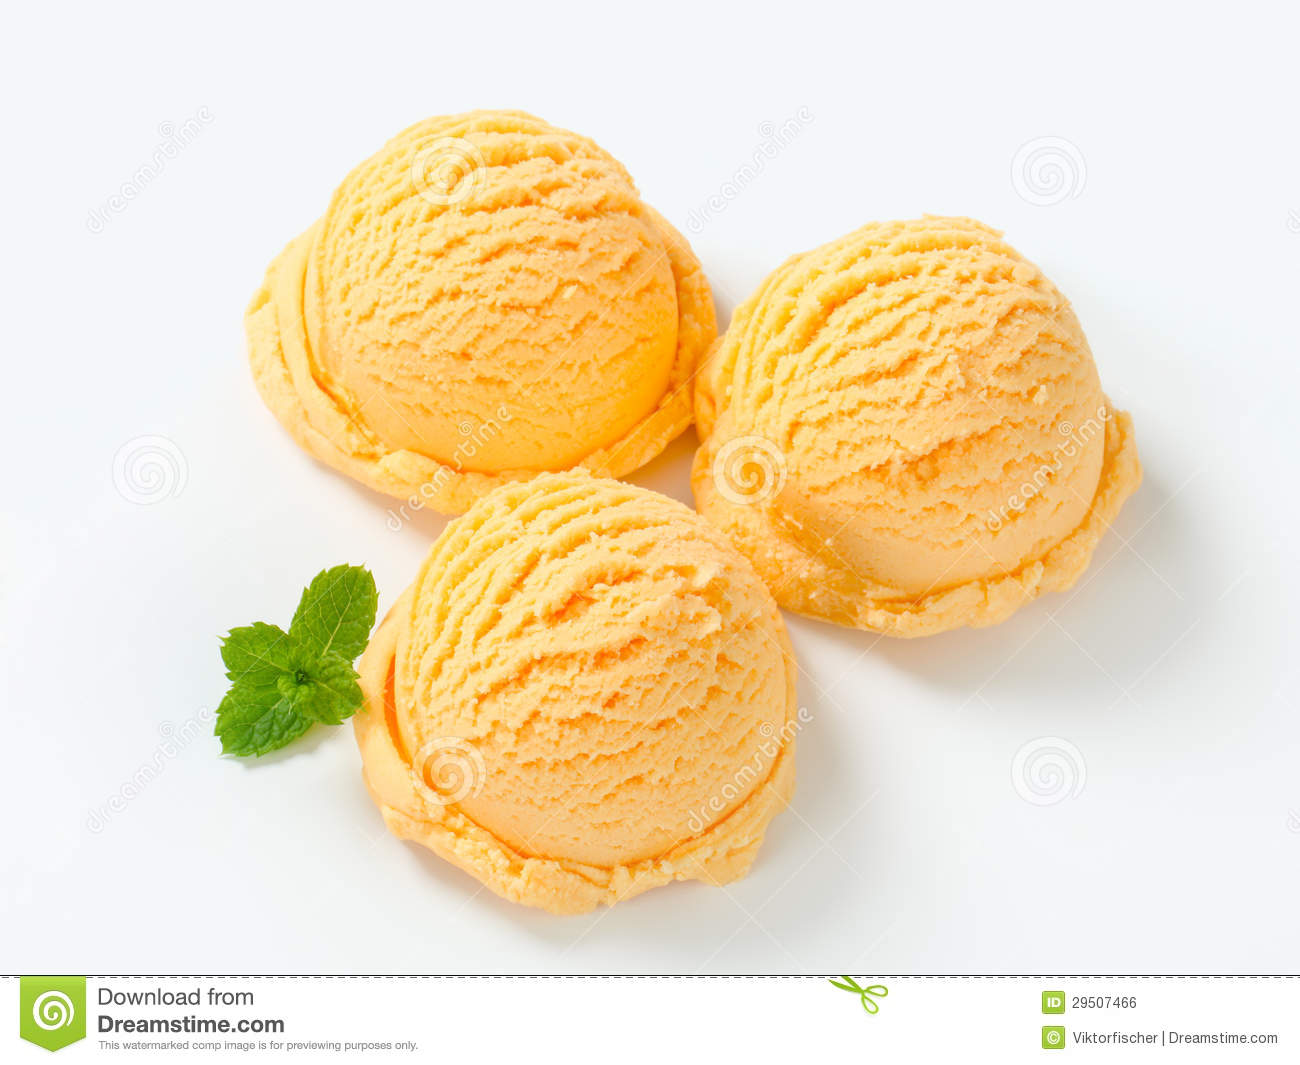 Apricot Ice Cream Royalty Free Stock Image - Image: 29507466